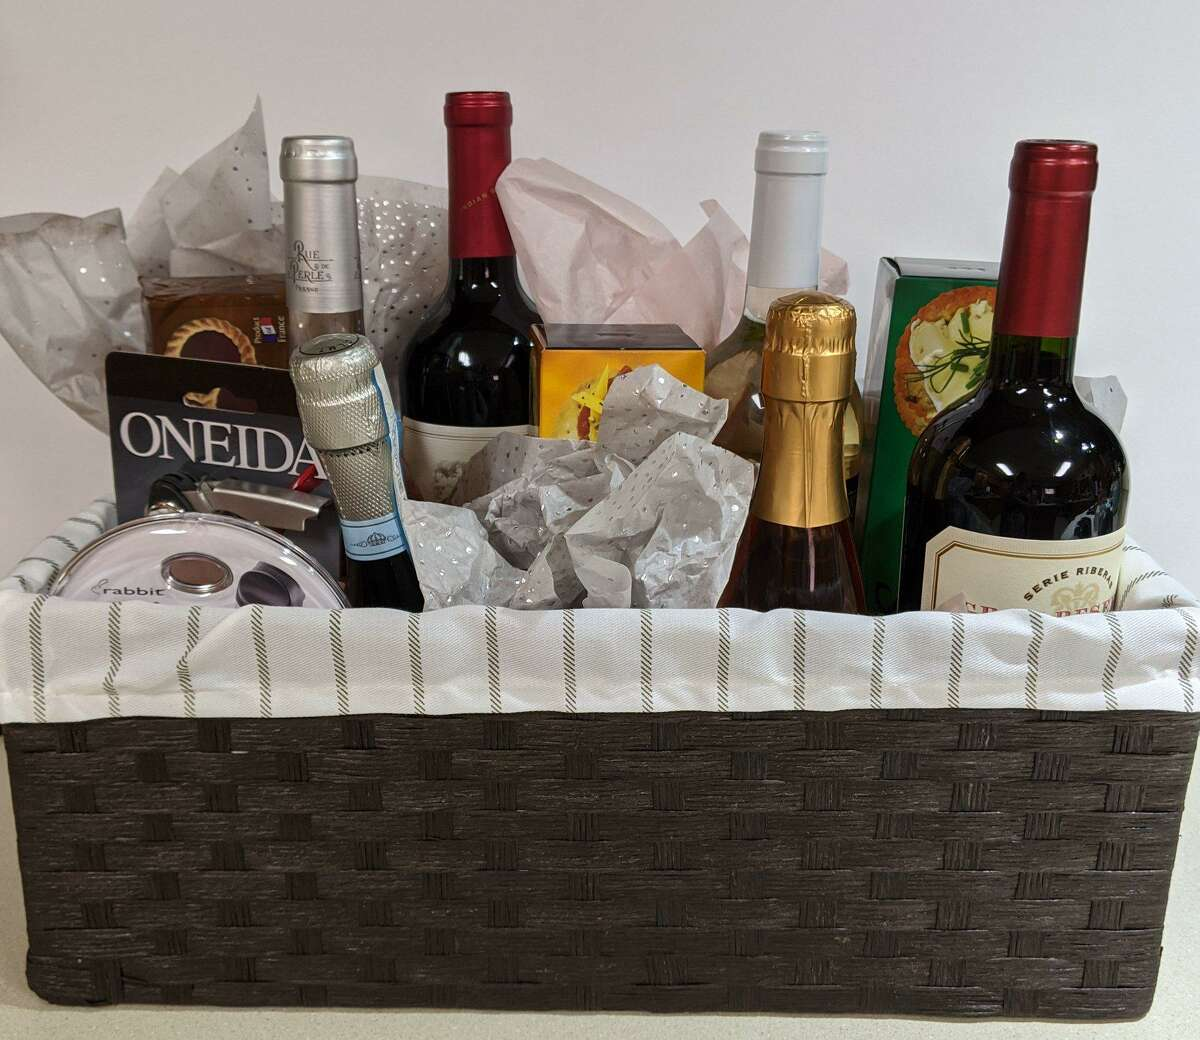 A fine wine basket will be available at Juliane's Compassion For Critters' fourth annual event, an online basket raffle with tickets on sale via the website from Oct. 1st through October 30th and a live Facebook event to draw the winners on Nov. 1st.